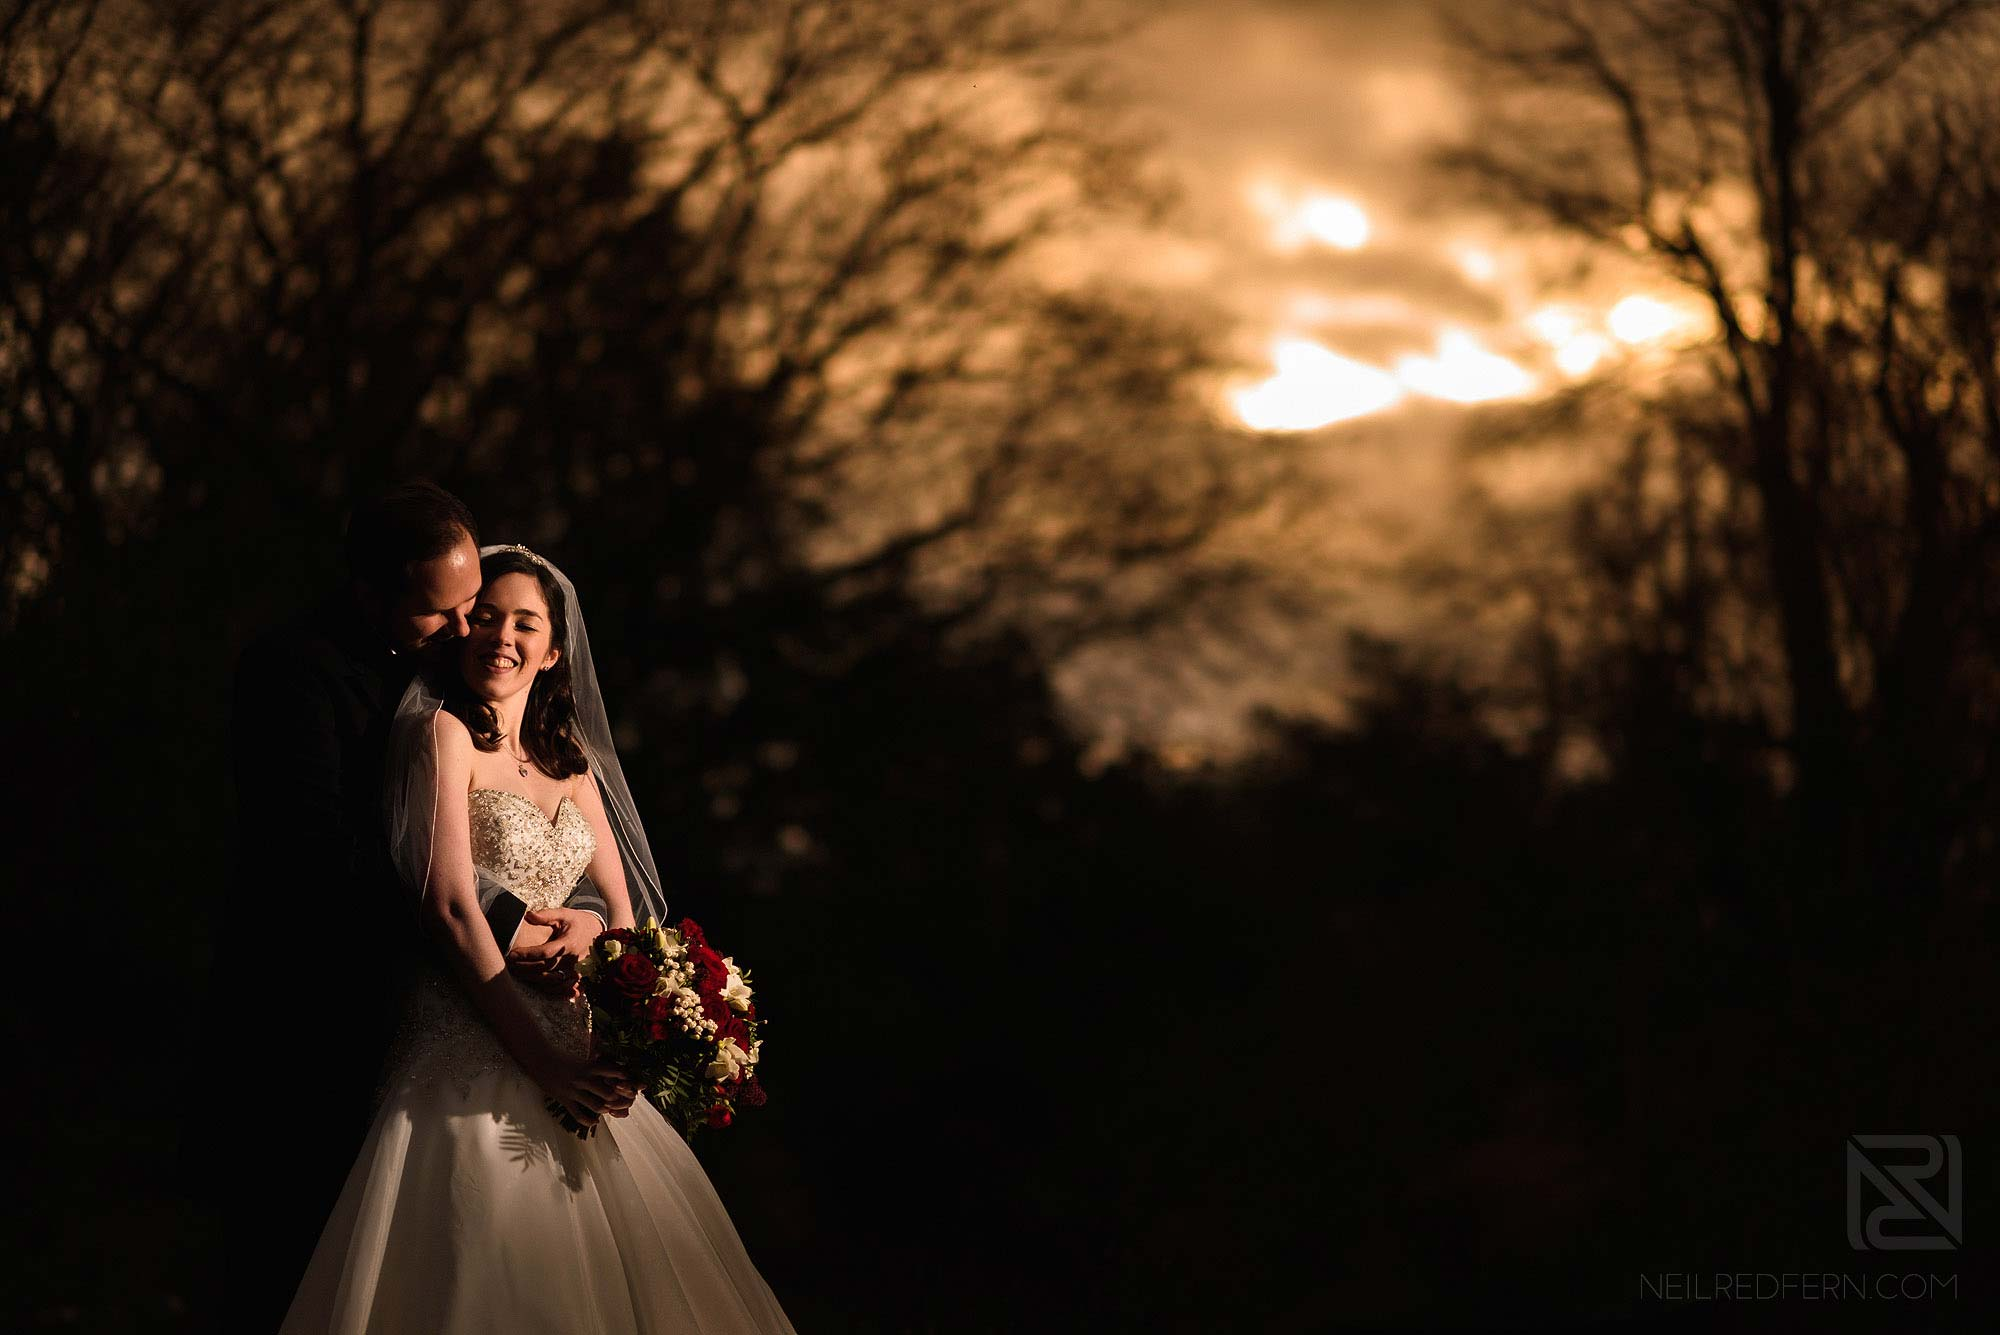 bride and groom portrait at sunset in winter